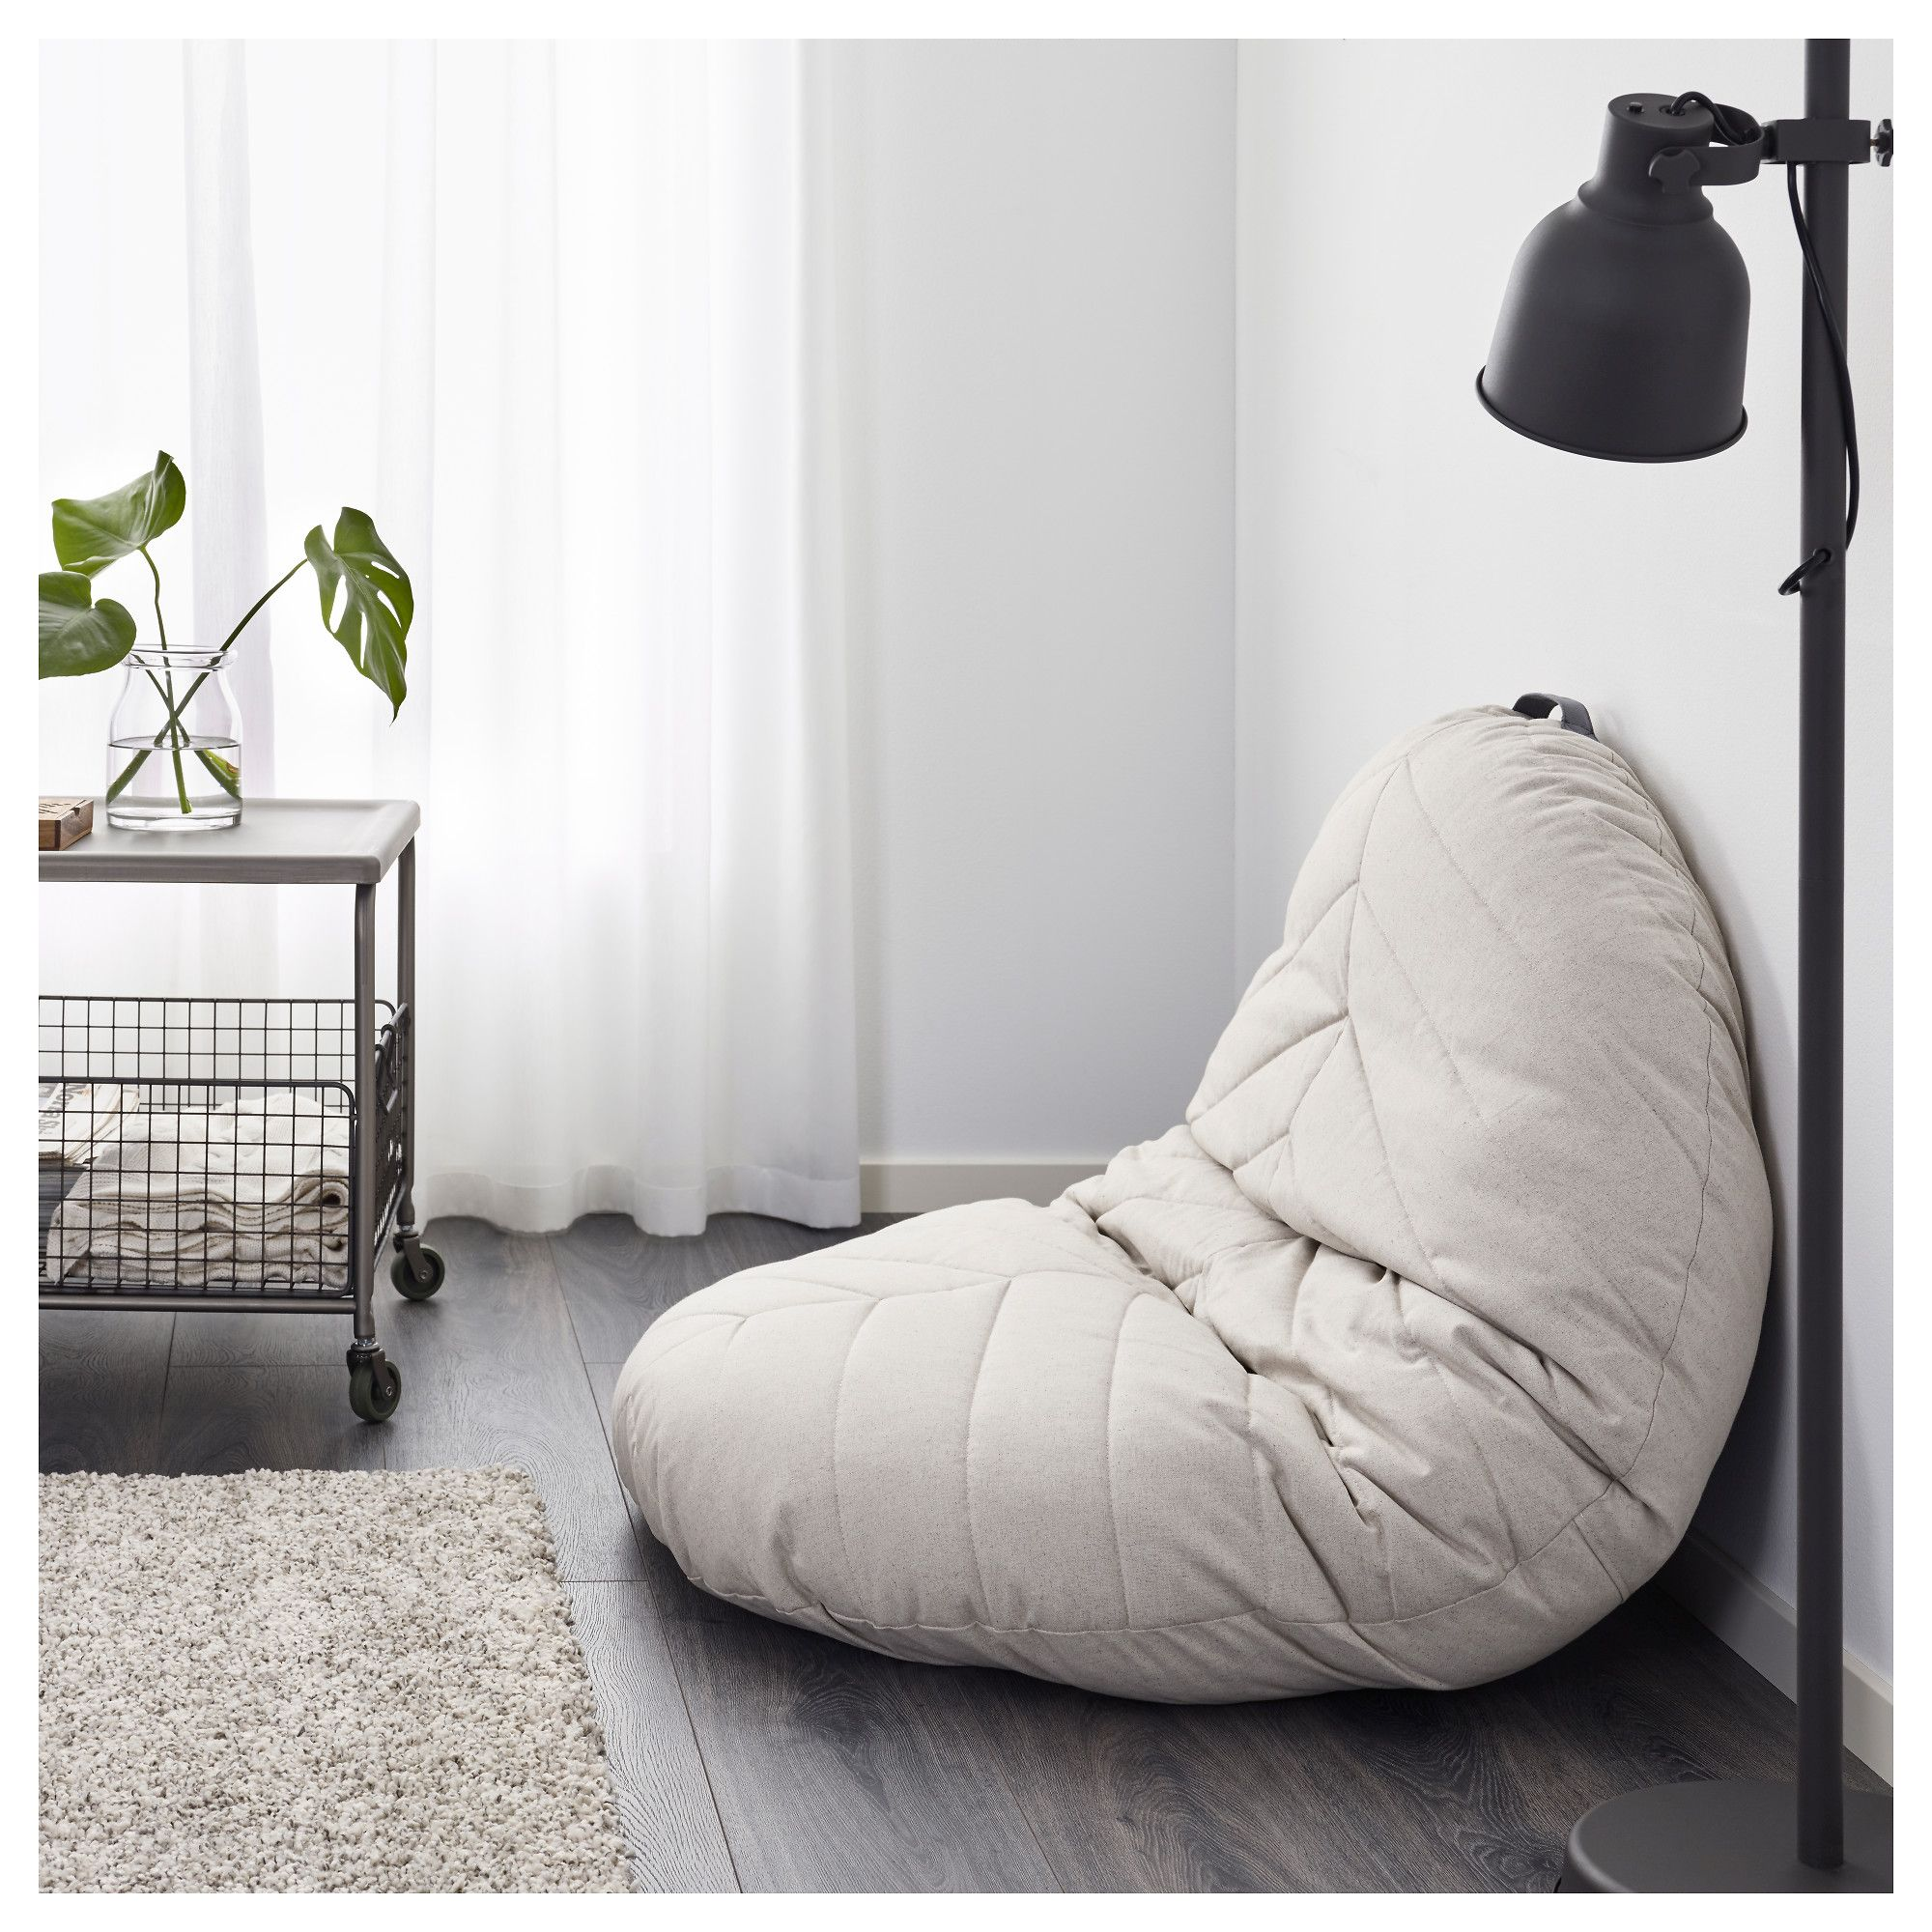 Us Furniture And Home Furnishings Large Floor Pillows Floor Pillows Floor Seating